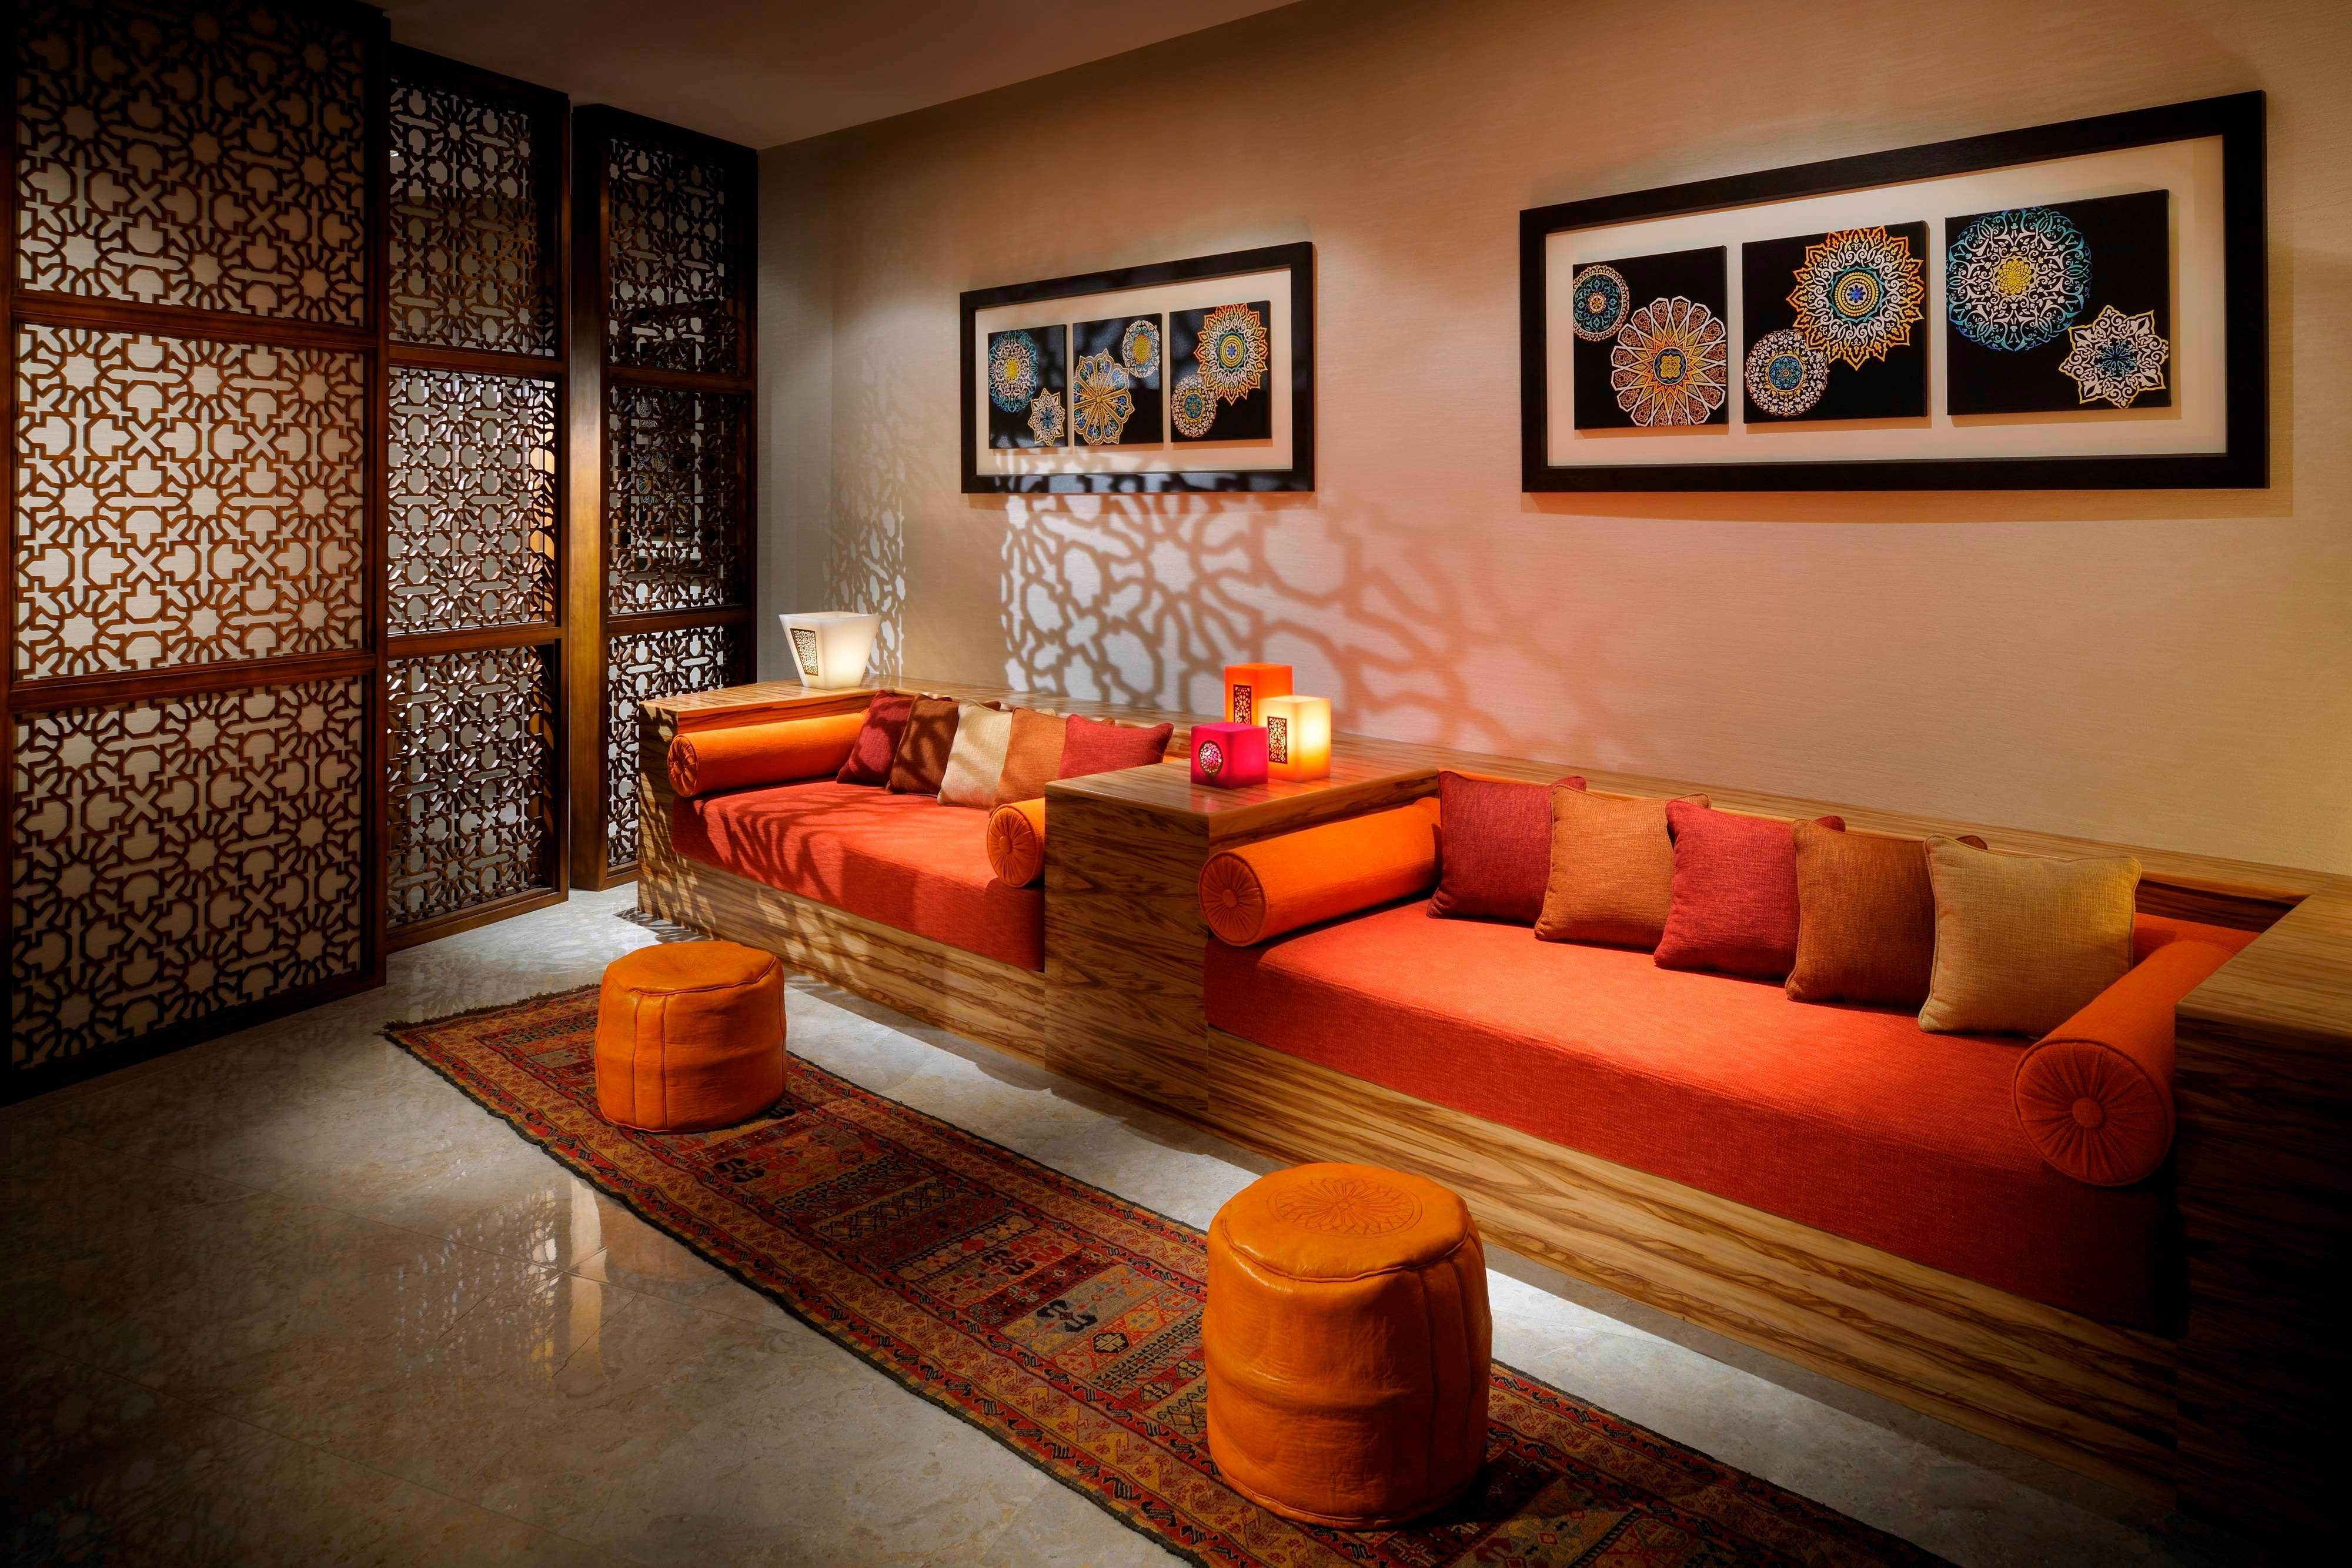 Dubai Spa reception area